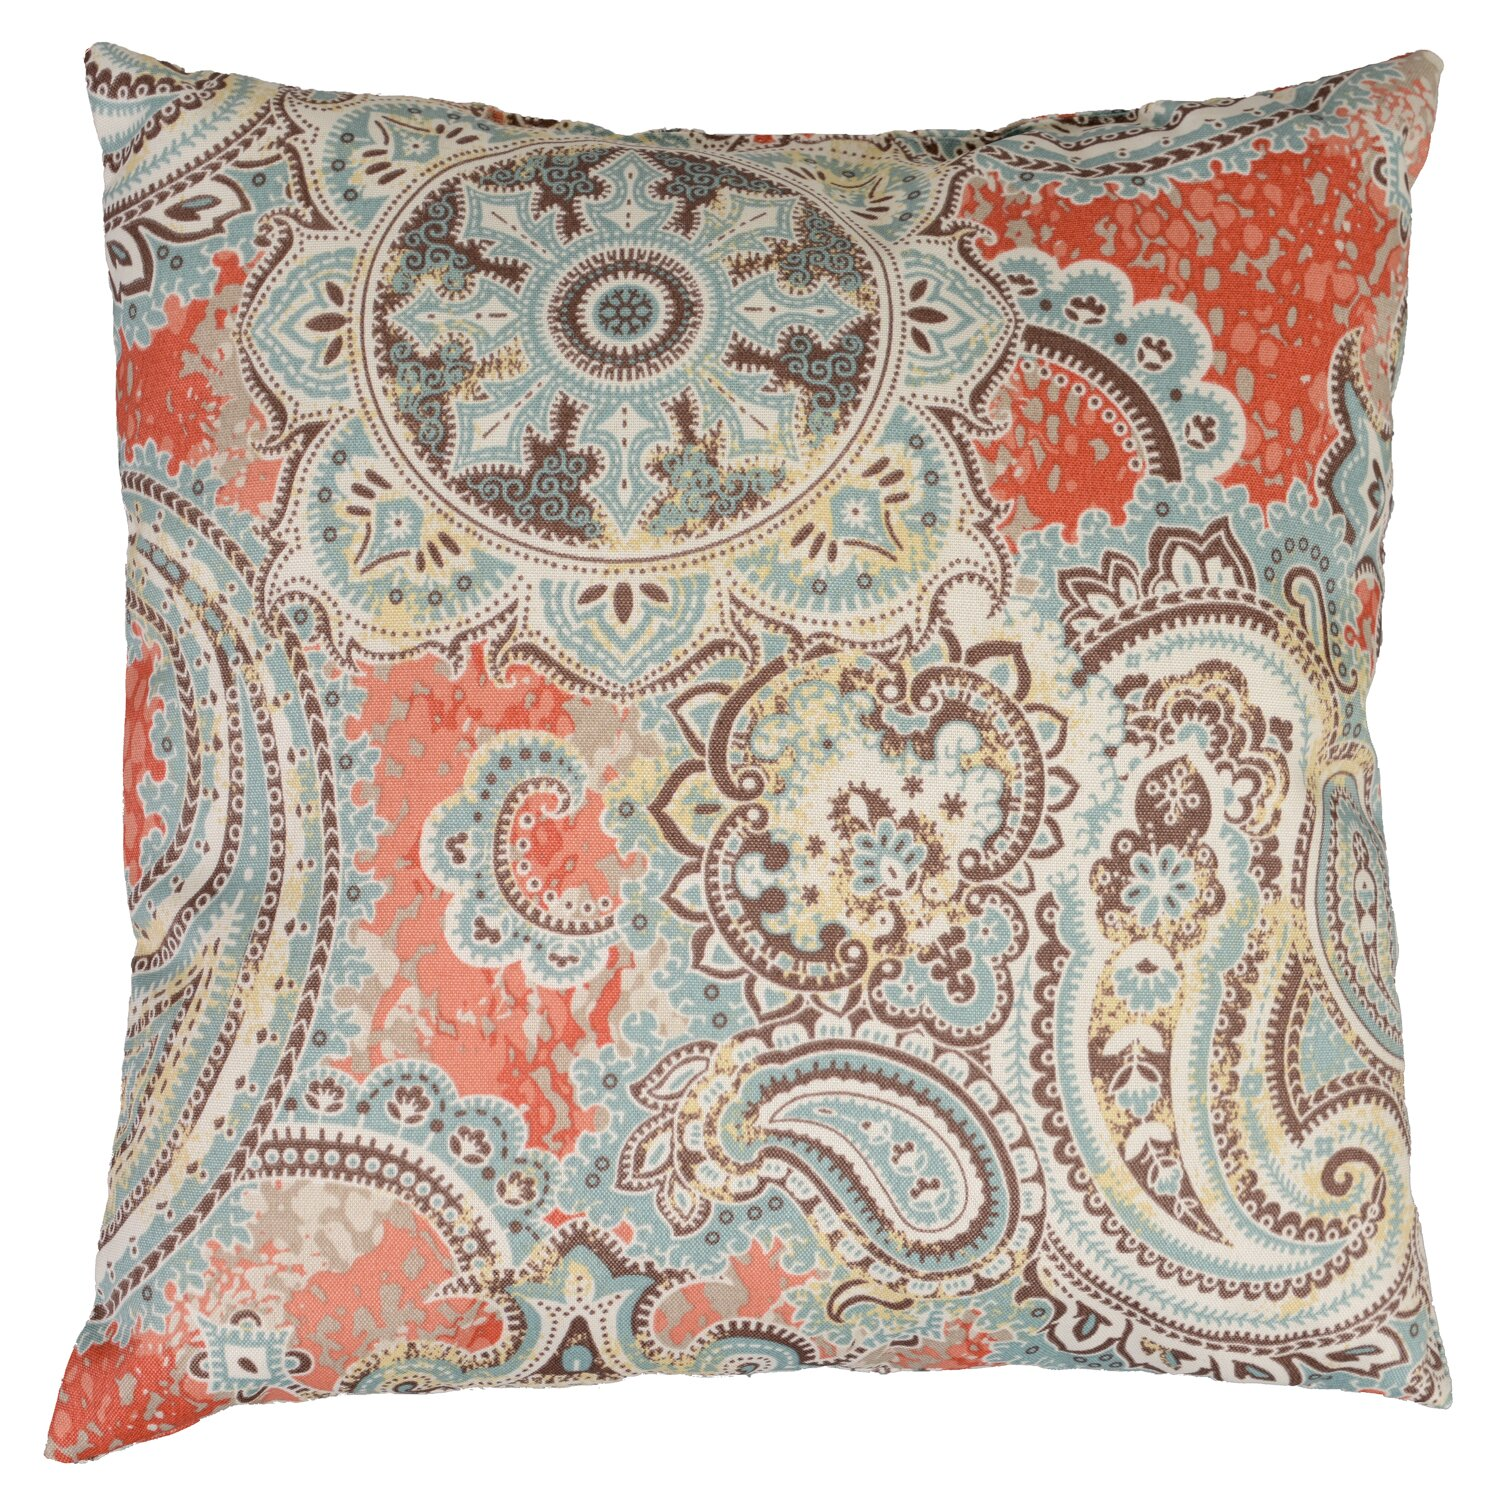 Wayfair Blue Decorative Pillows : Swan Dye and Printing Houssie Throw Pillow & Reviews Wayfair